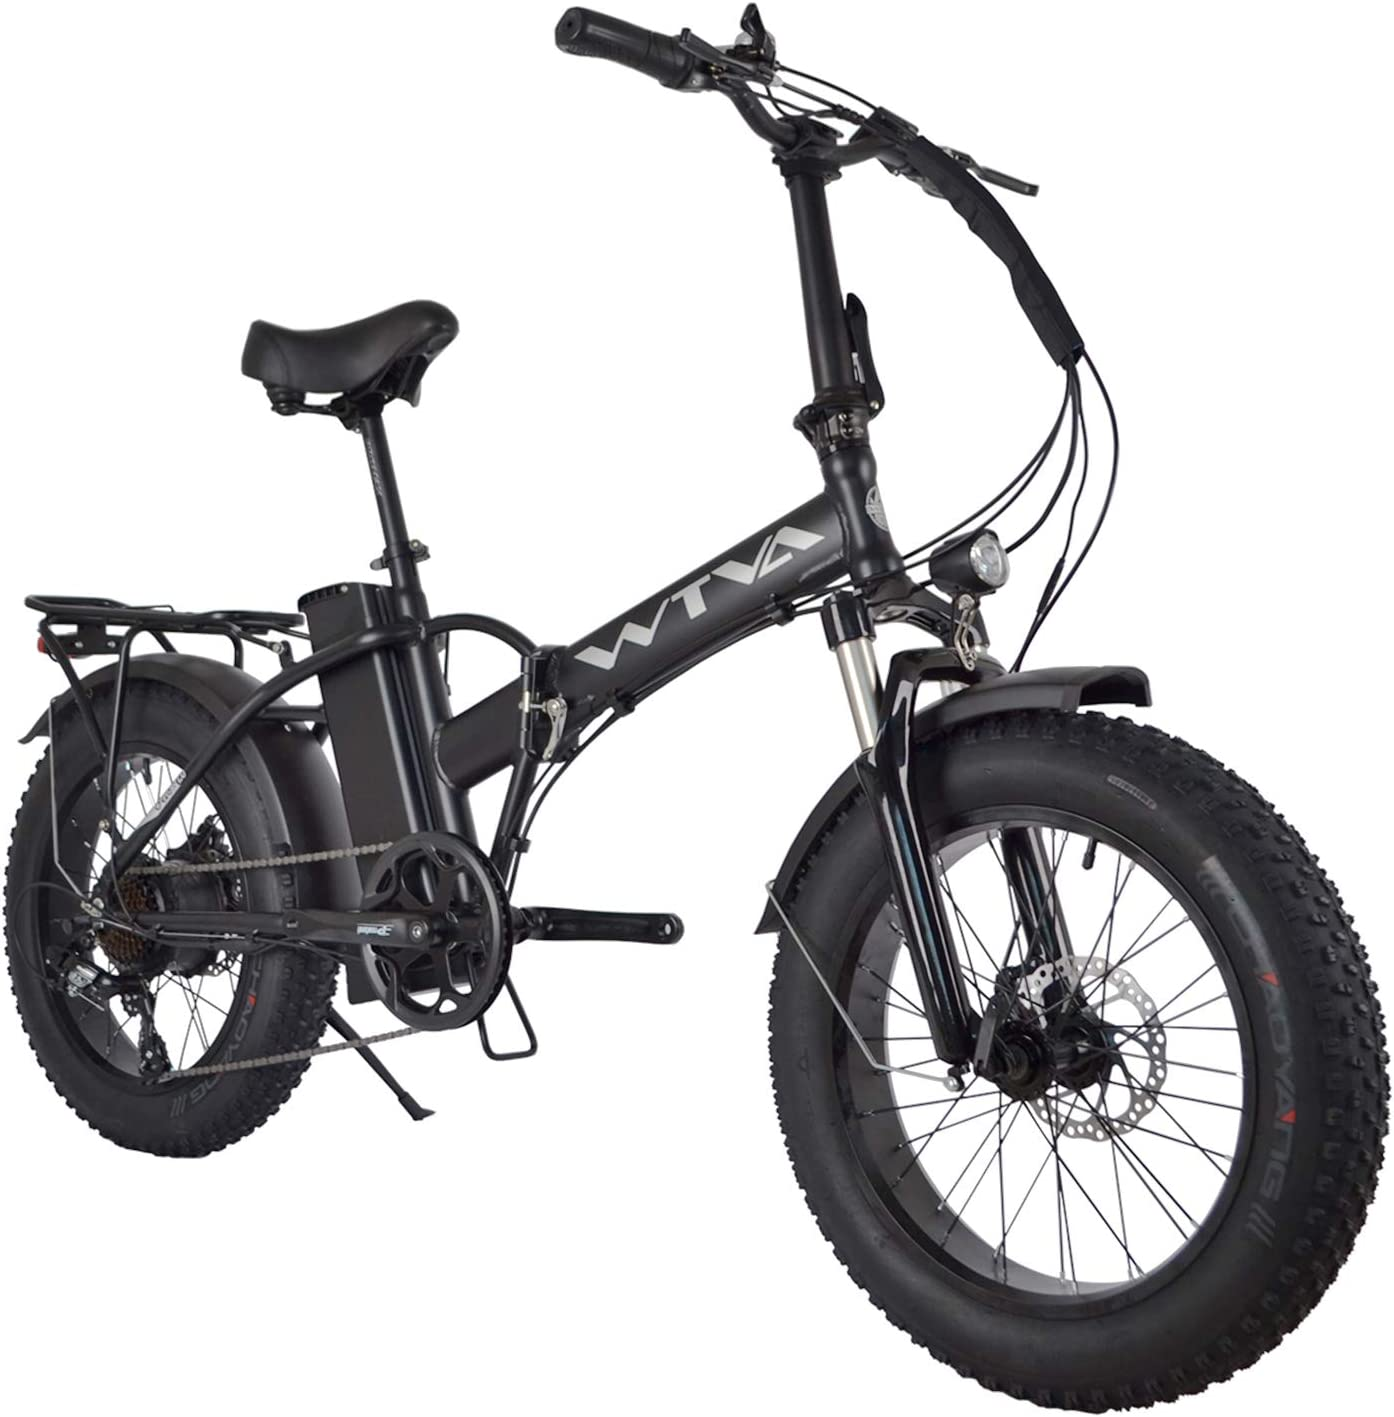 WTVA 20'' Fat Tires Foldable Electric Power SEAL limited product Time sale Motor Bike 750W with